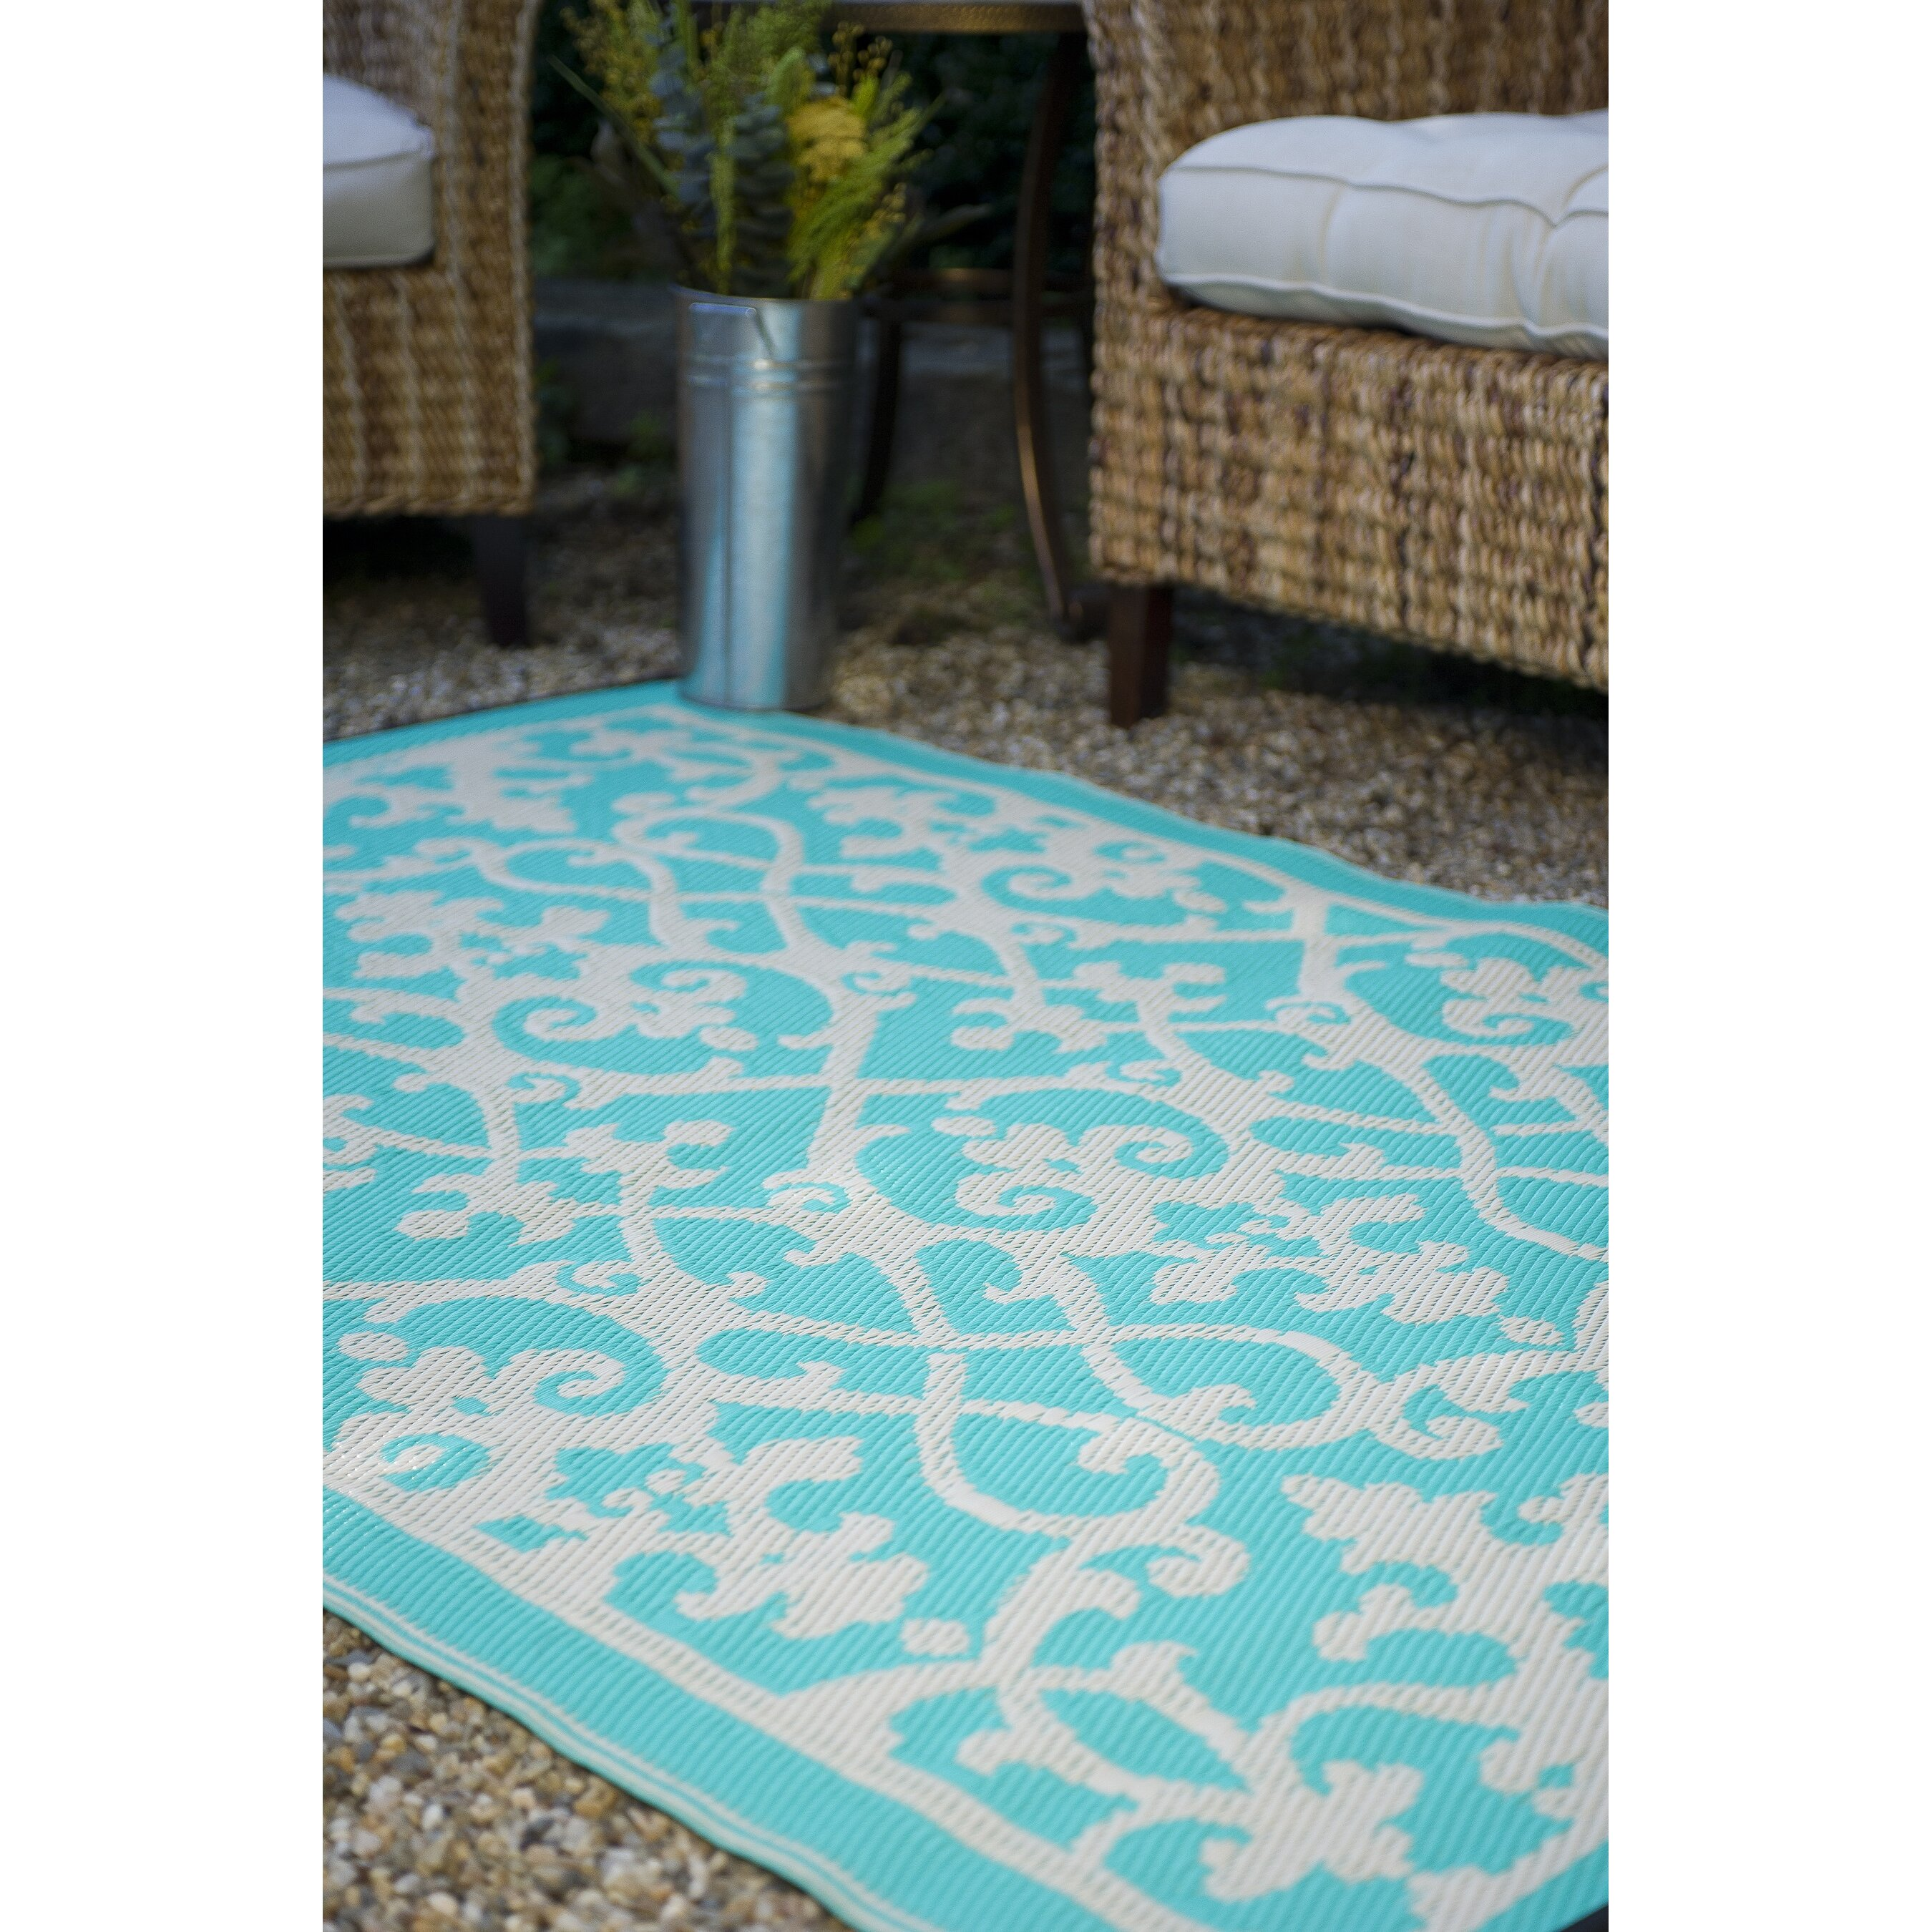 Turquoise And Brown Rug: Turquoise Brown Rug